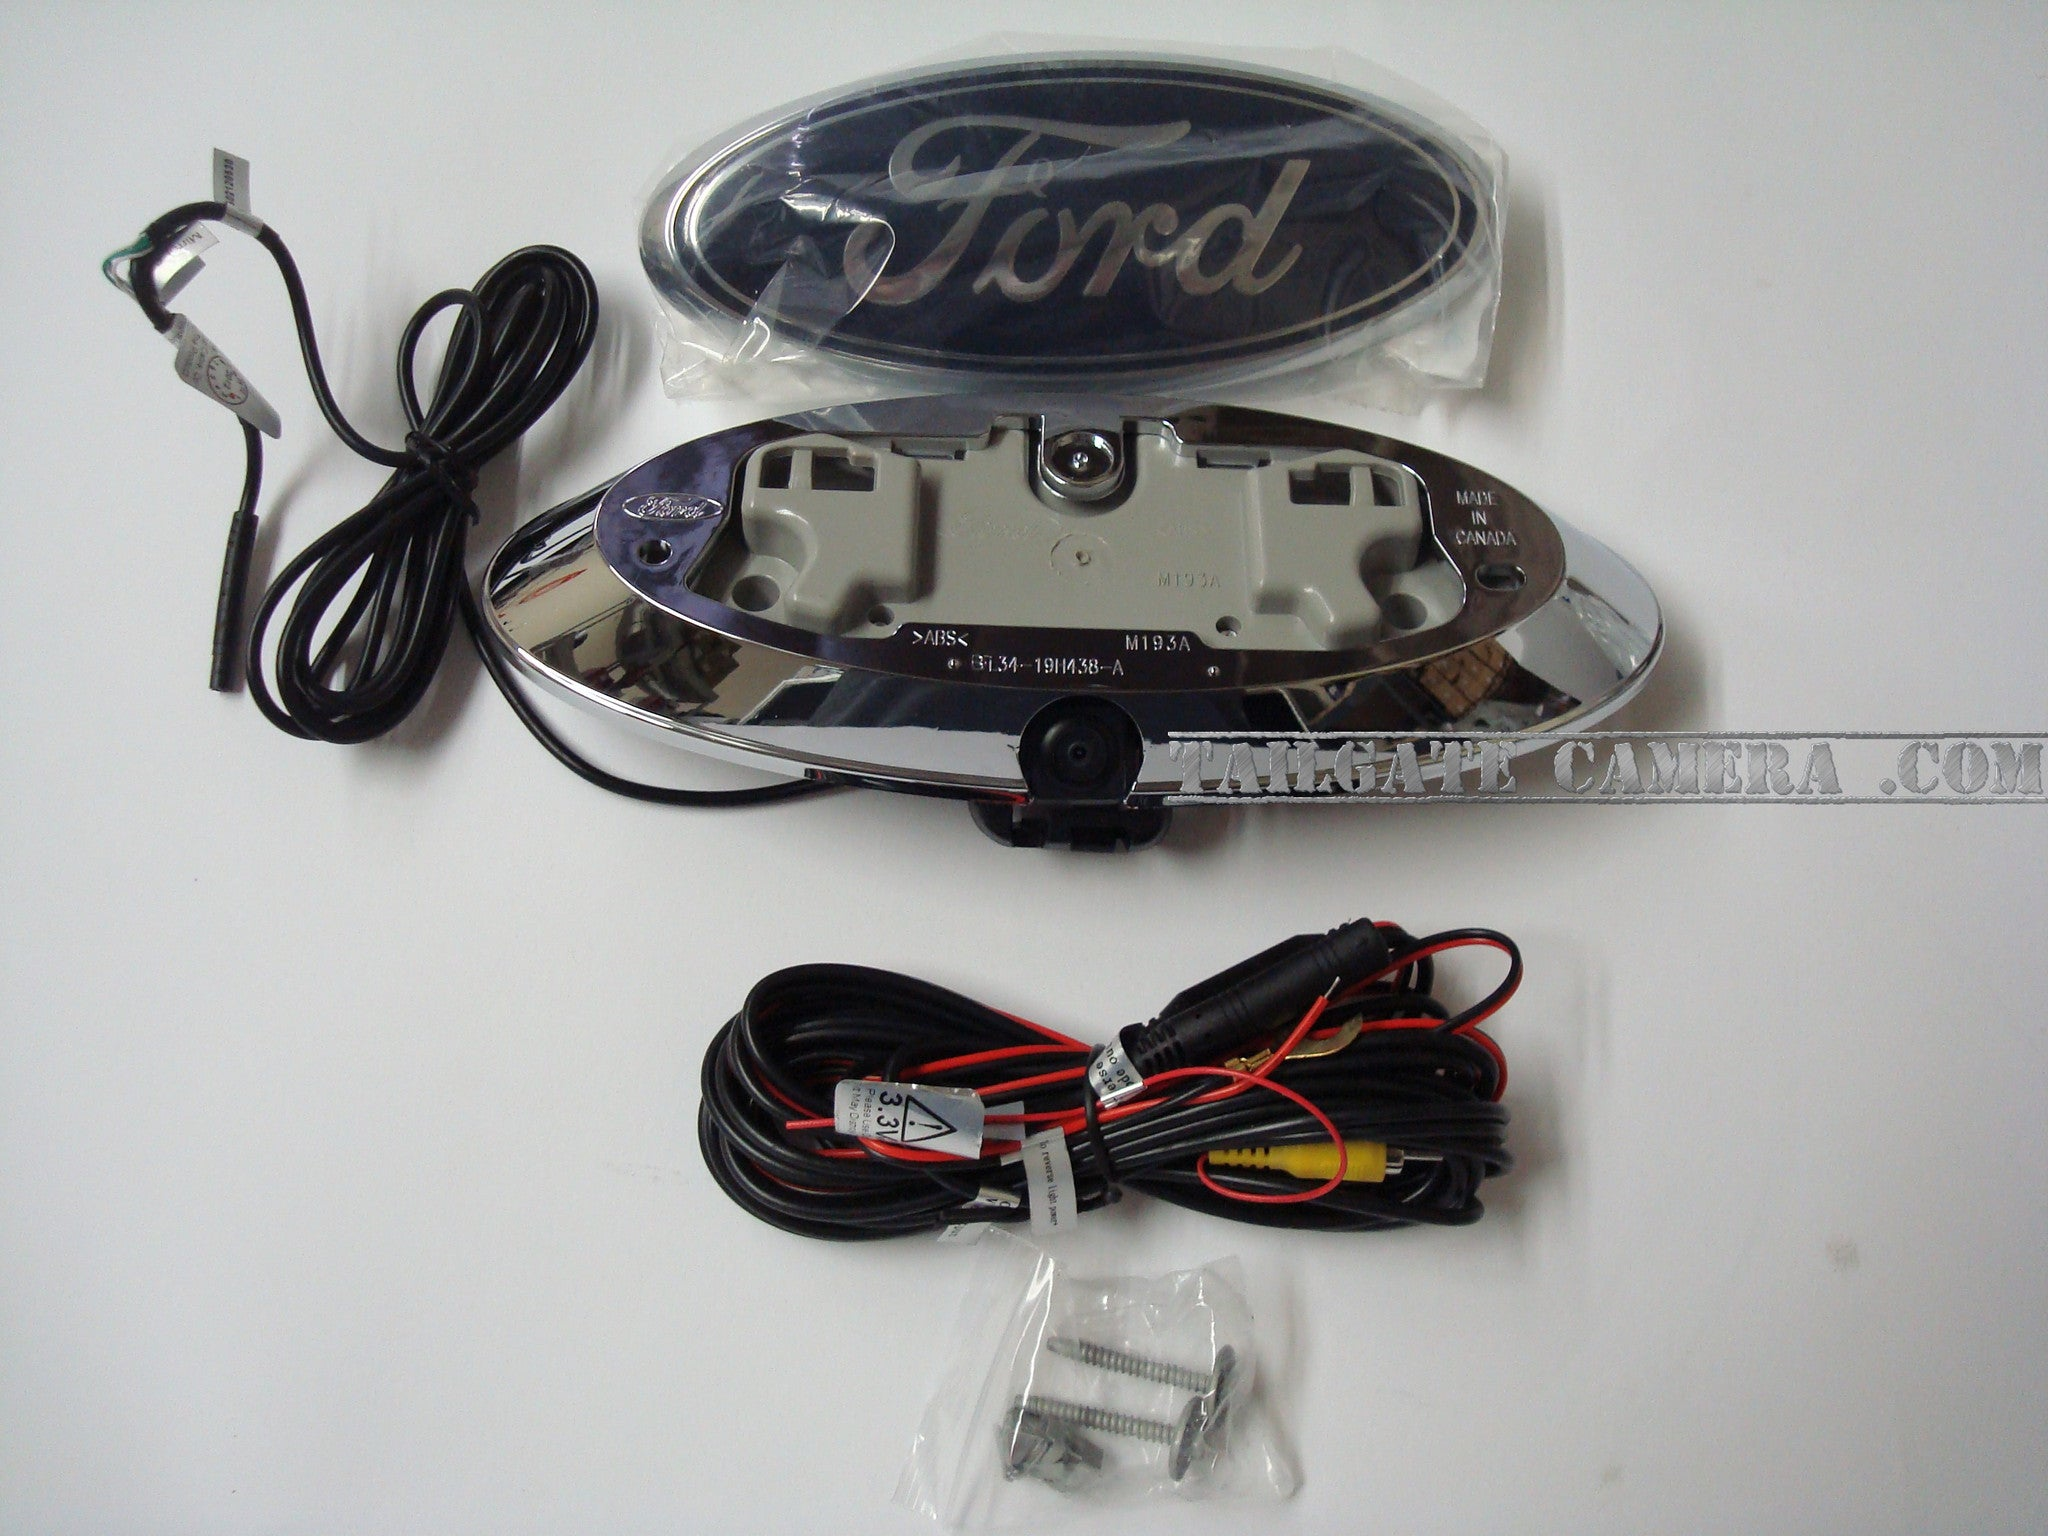 dsc1492?v=1361385570 ford,f150,tailgate,emblem,camera,ford,f250,tailgate,camera,f350 Ford F-250 Wiring Diagram at readyjetset.co